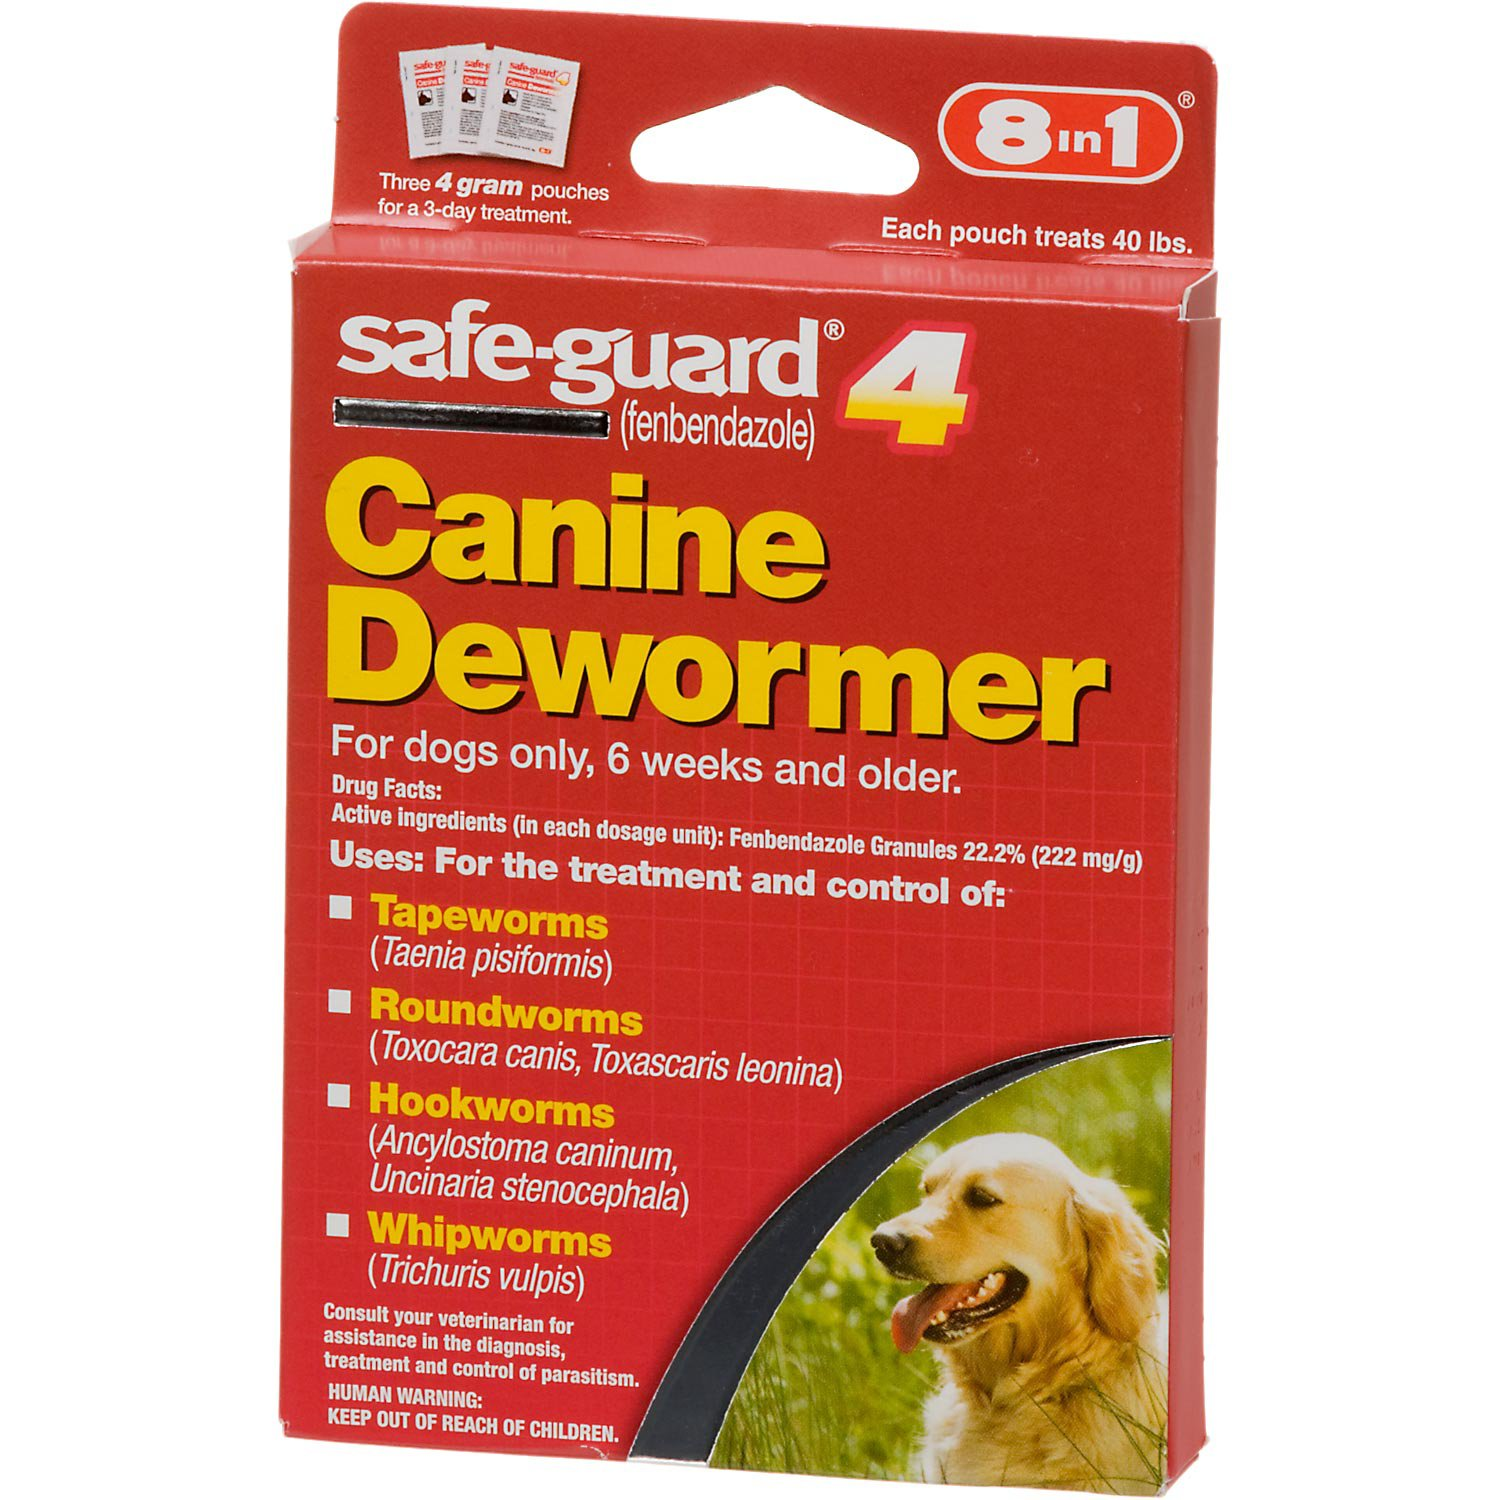 8 in 1 safe-guard 4 Canine Dewormer